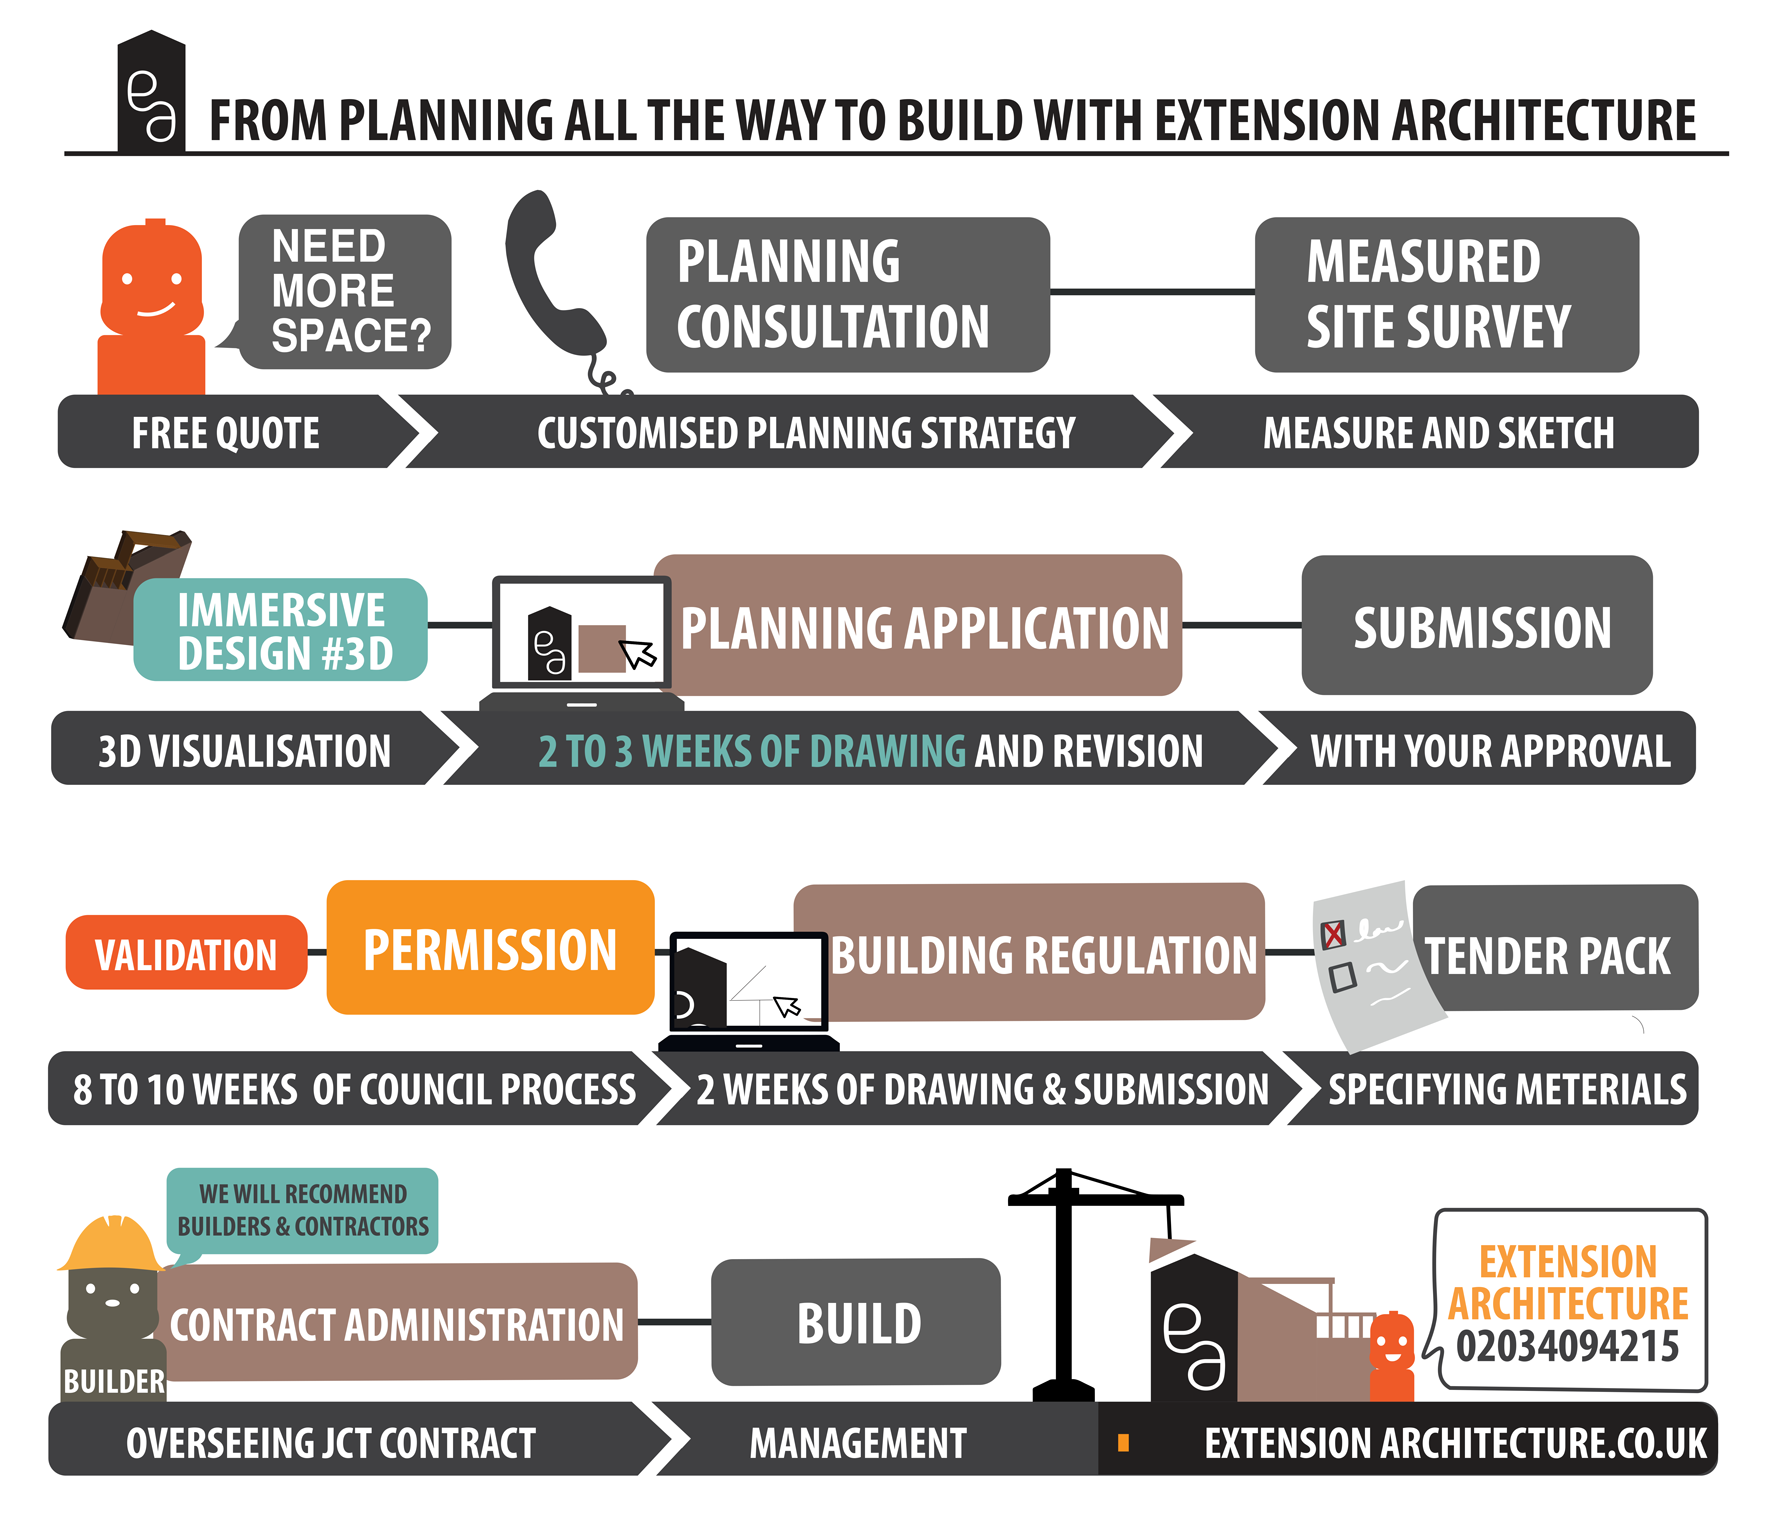 planning-application-building-regulation-how-to-get-permission-extension-architecture